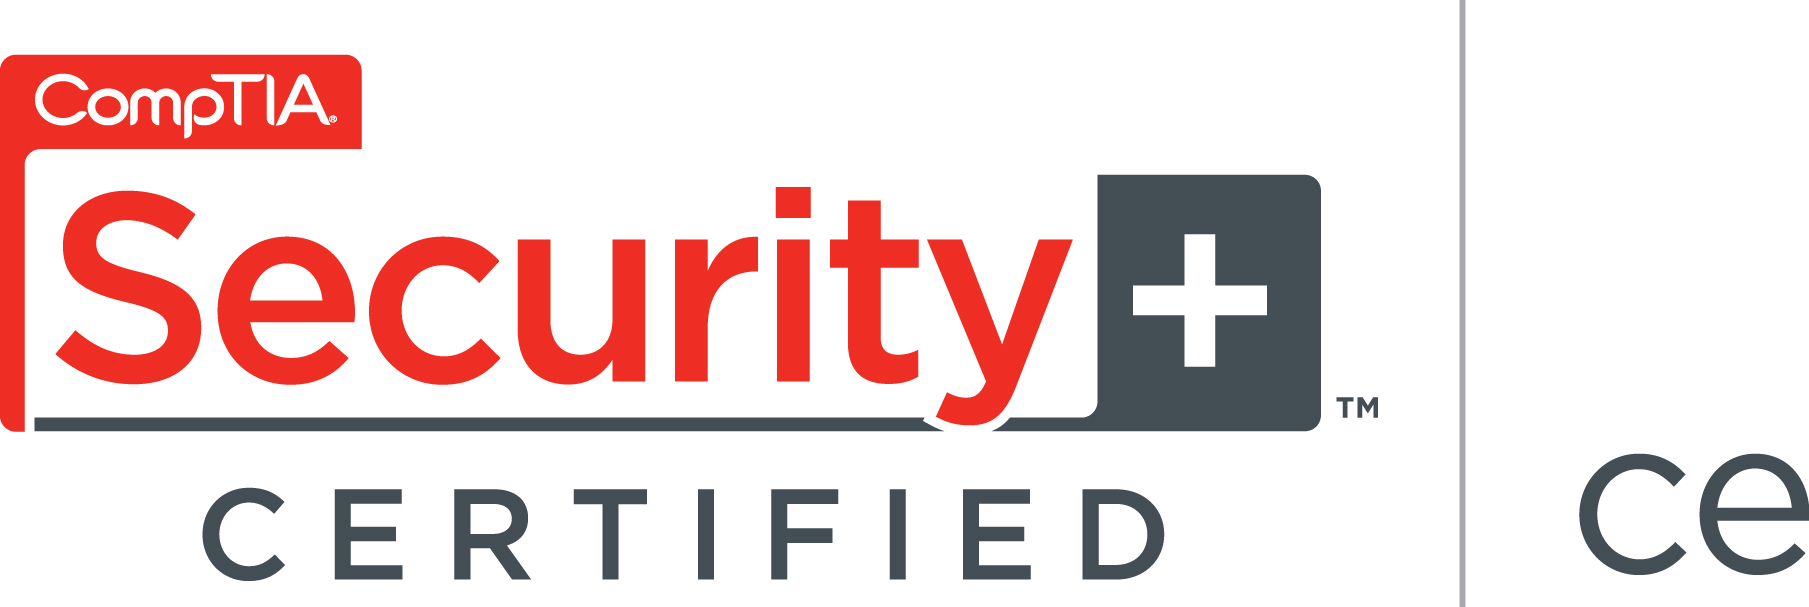 Security+_CE